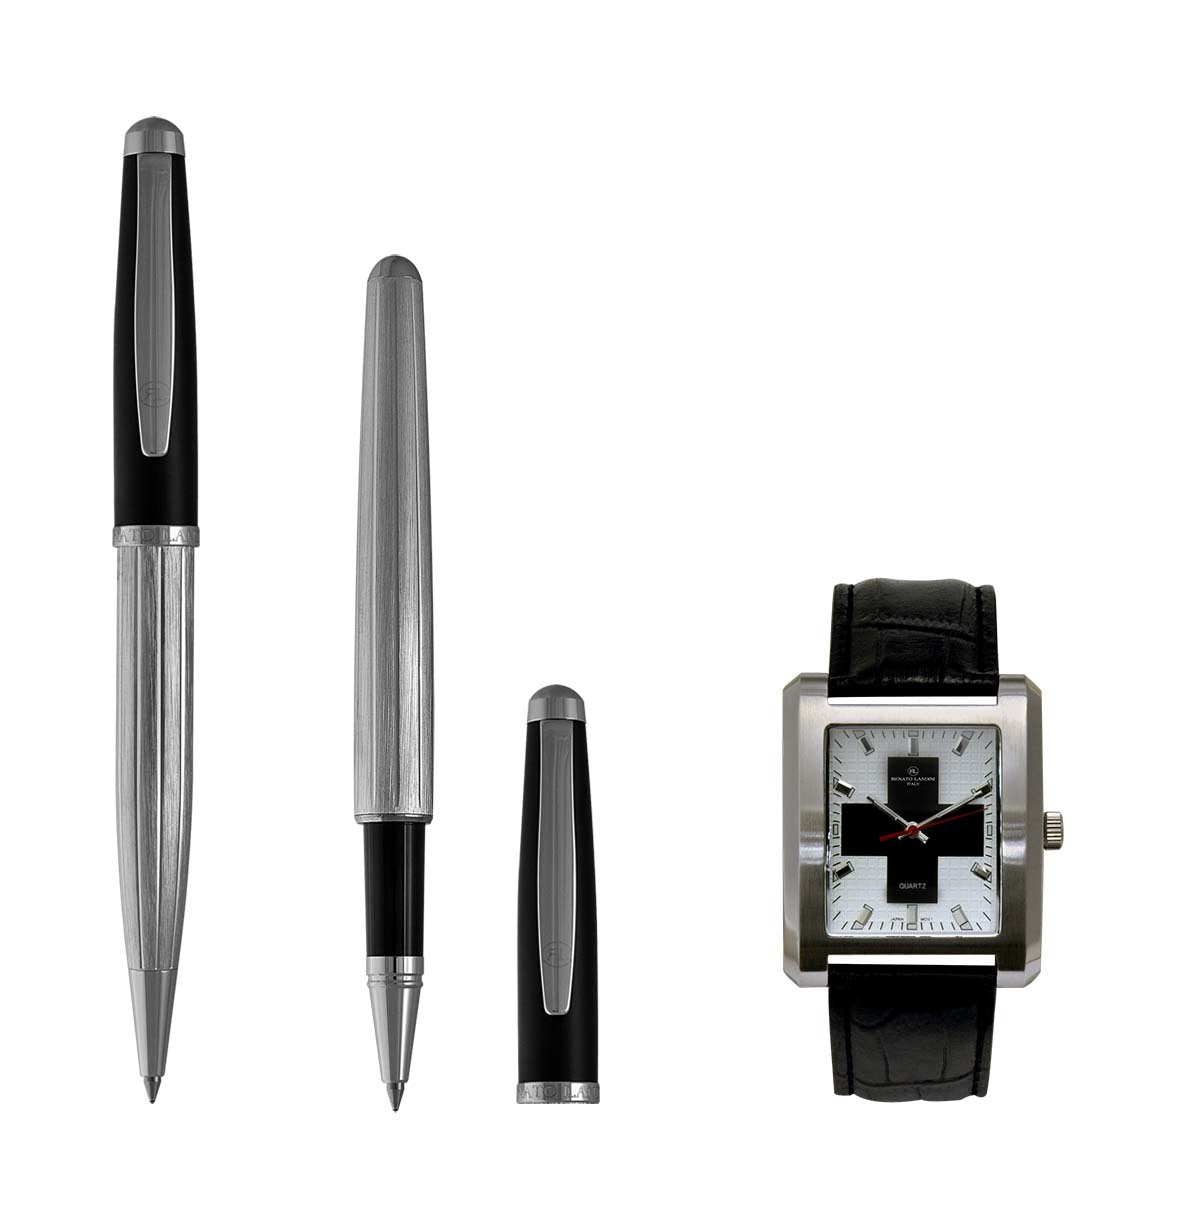 RENATO LANDINI Pen Set + Watch